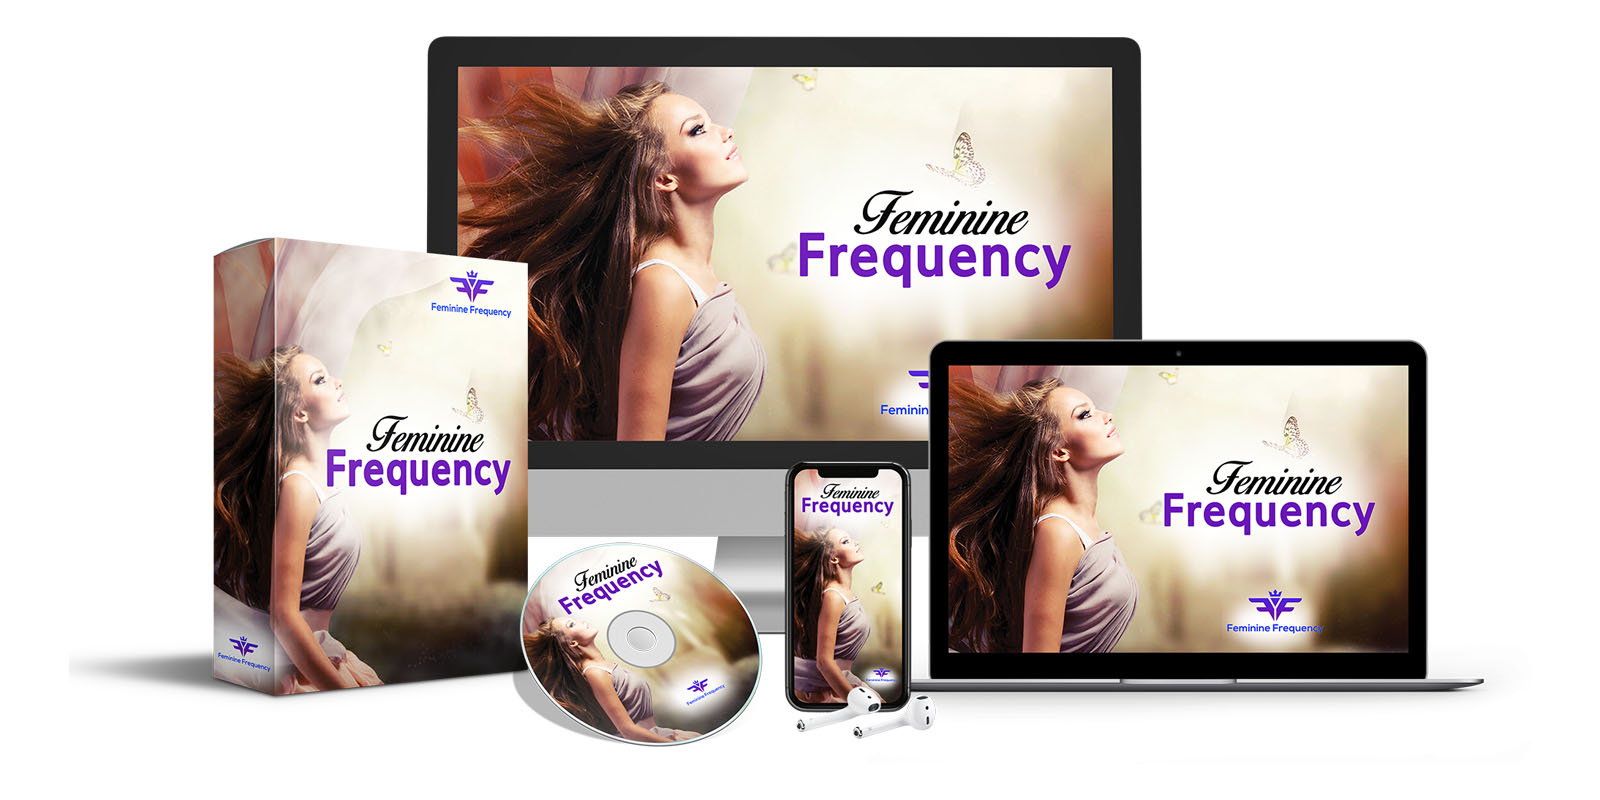 Feminine Frequency Reviews